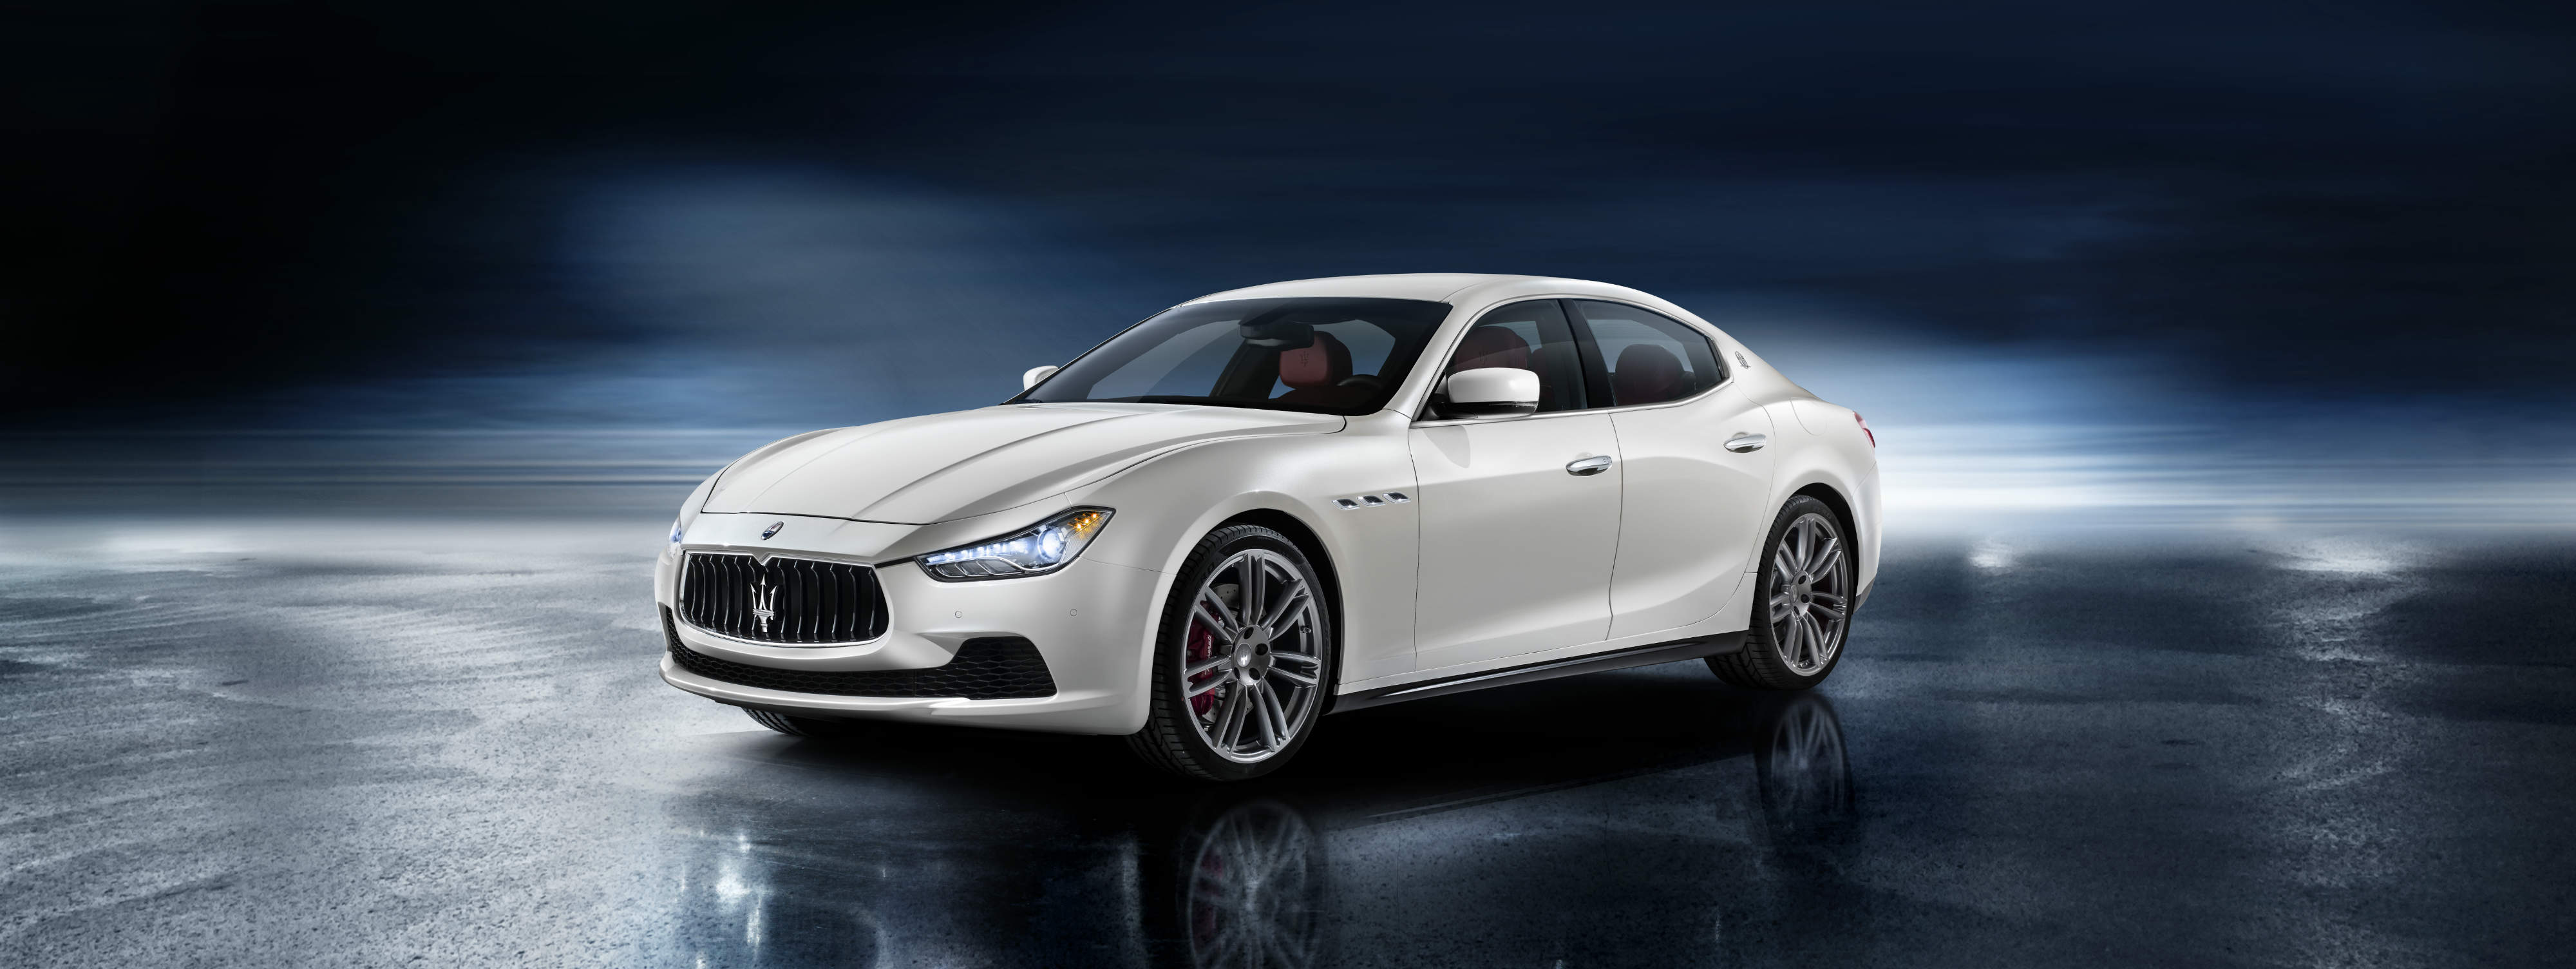 Maseratidrew on all its vast experience in the manufacturing of GT ...